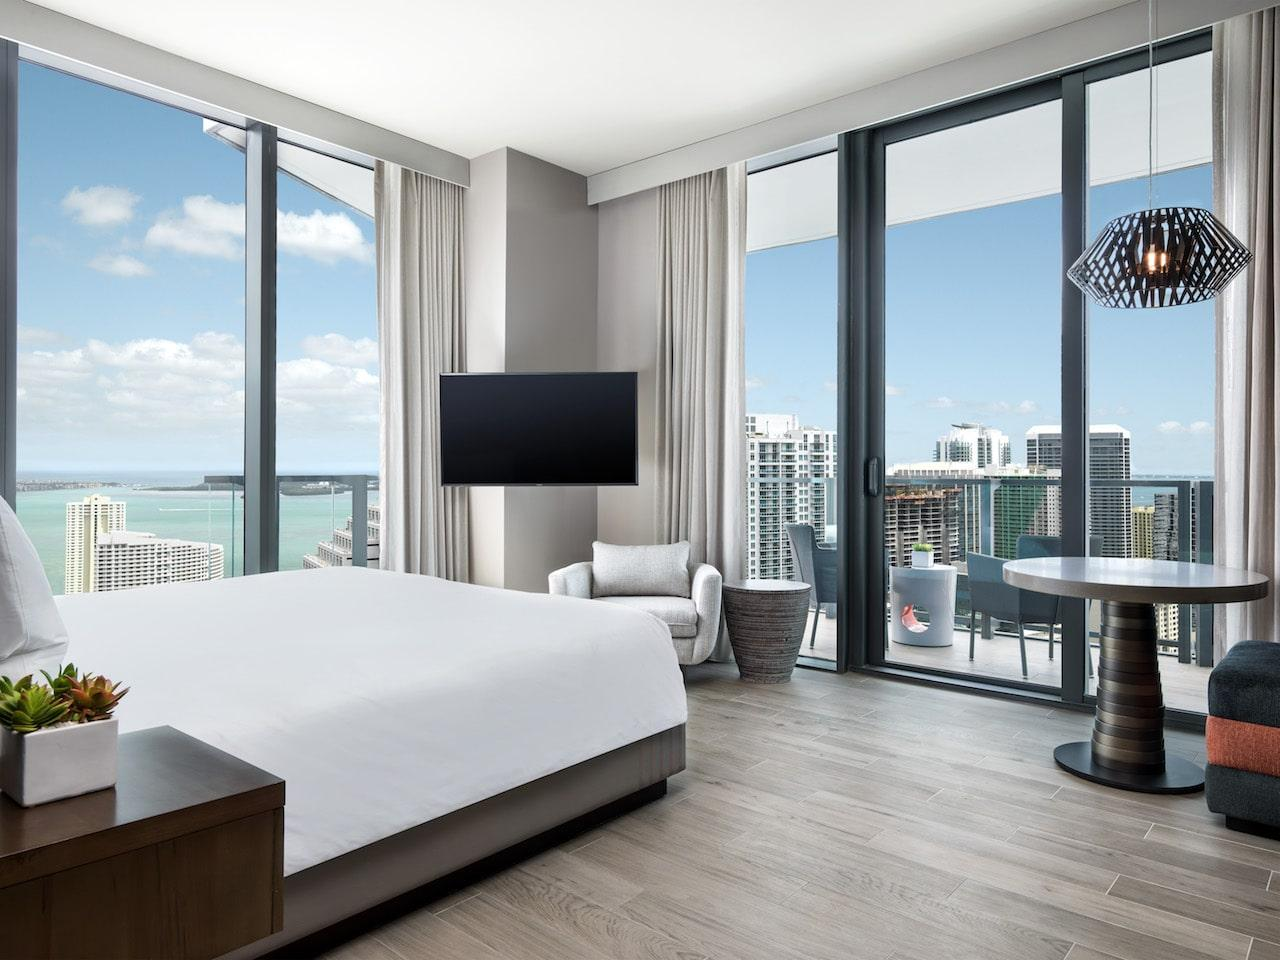 EAST Miami Brickell bedroom